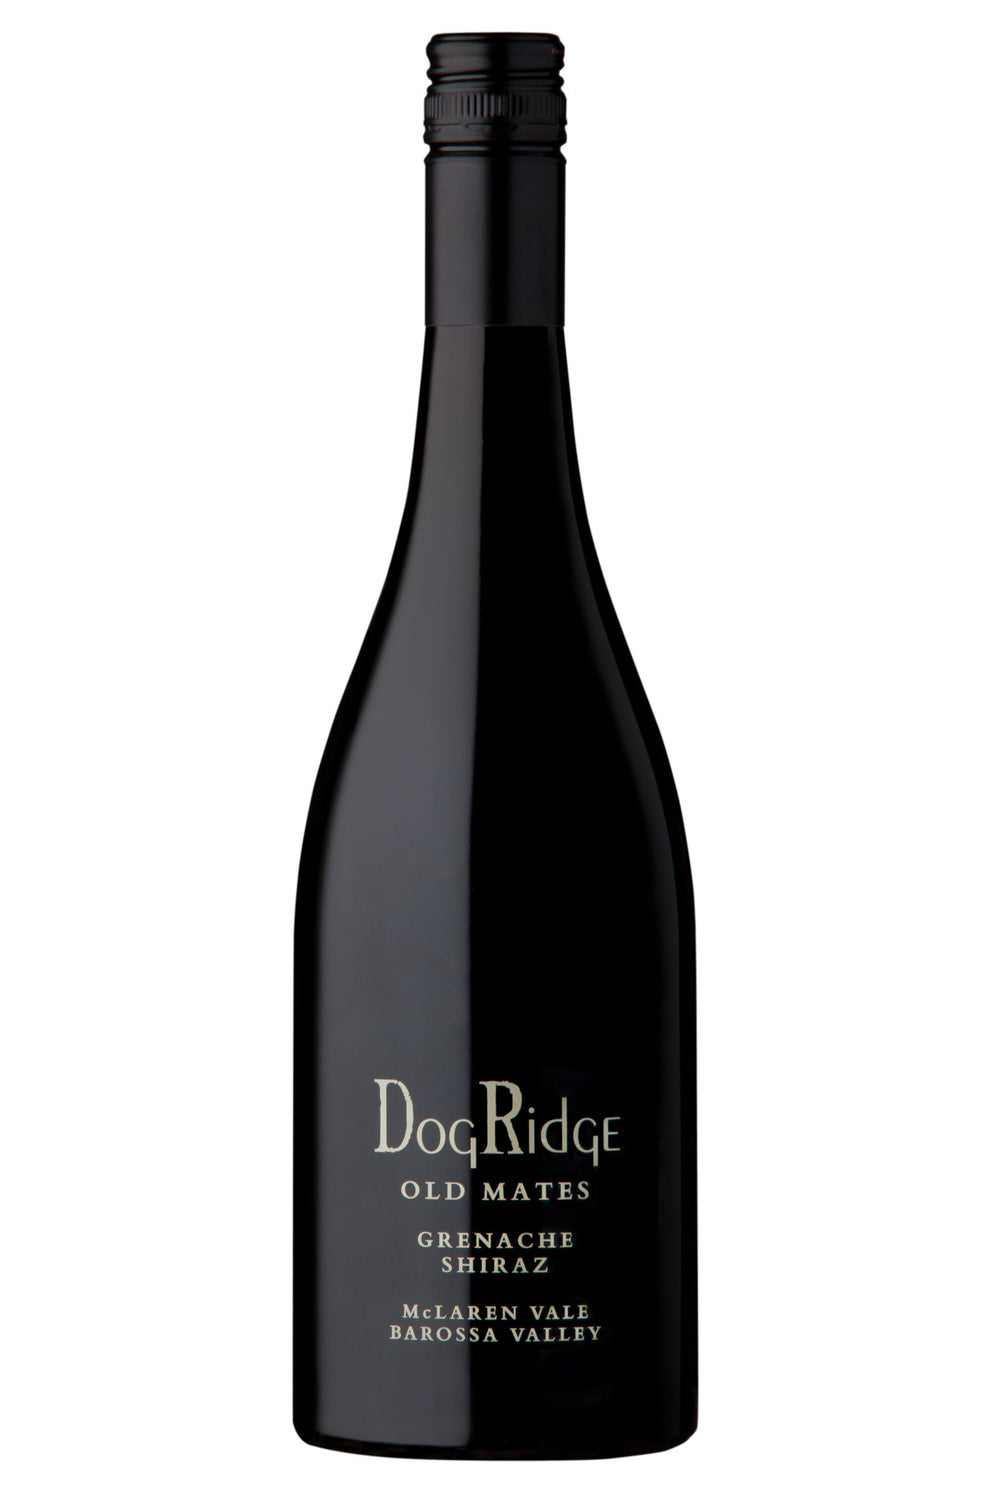 DogRidge OLD MATES Grenache Shiraz 2017 - New Release